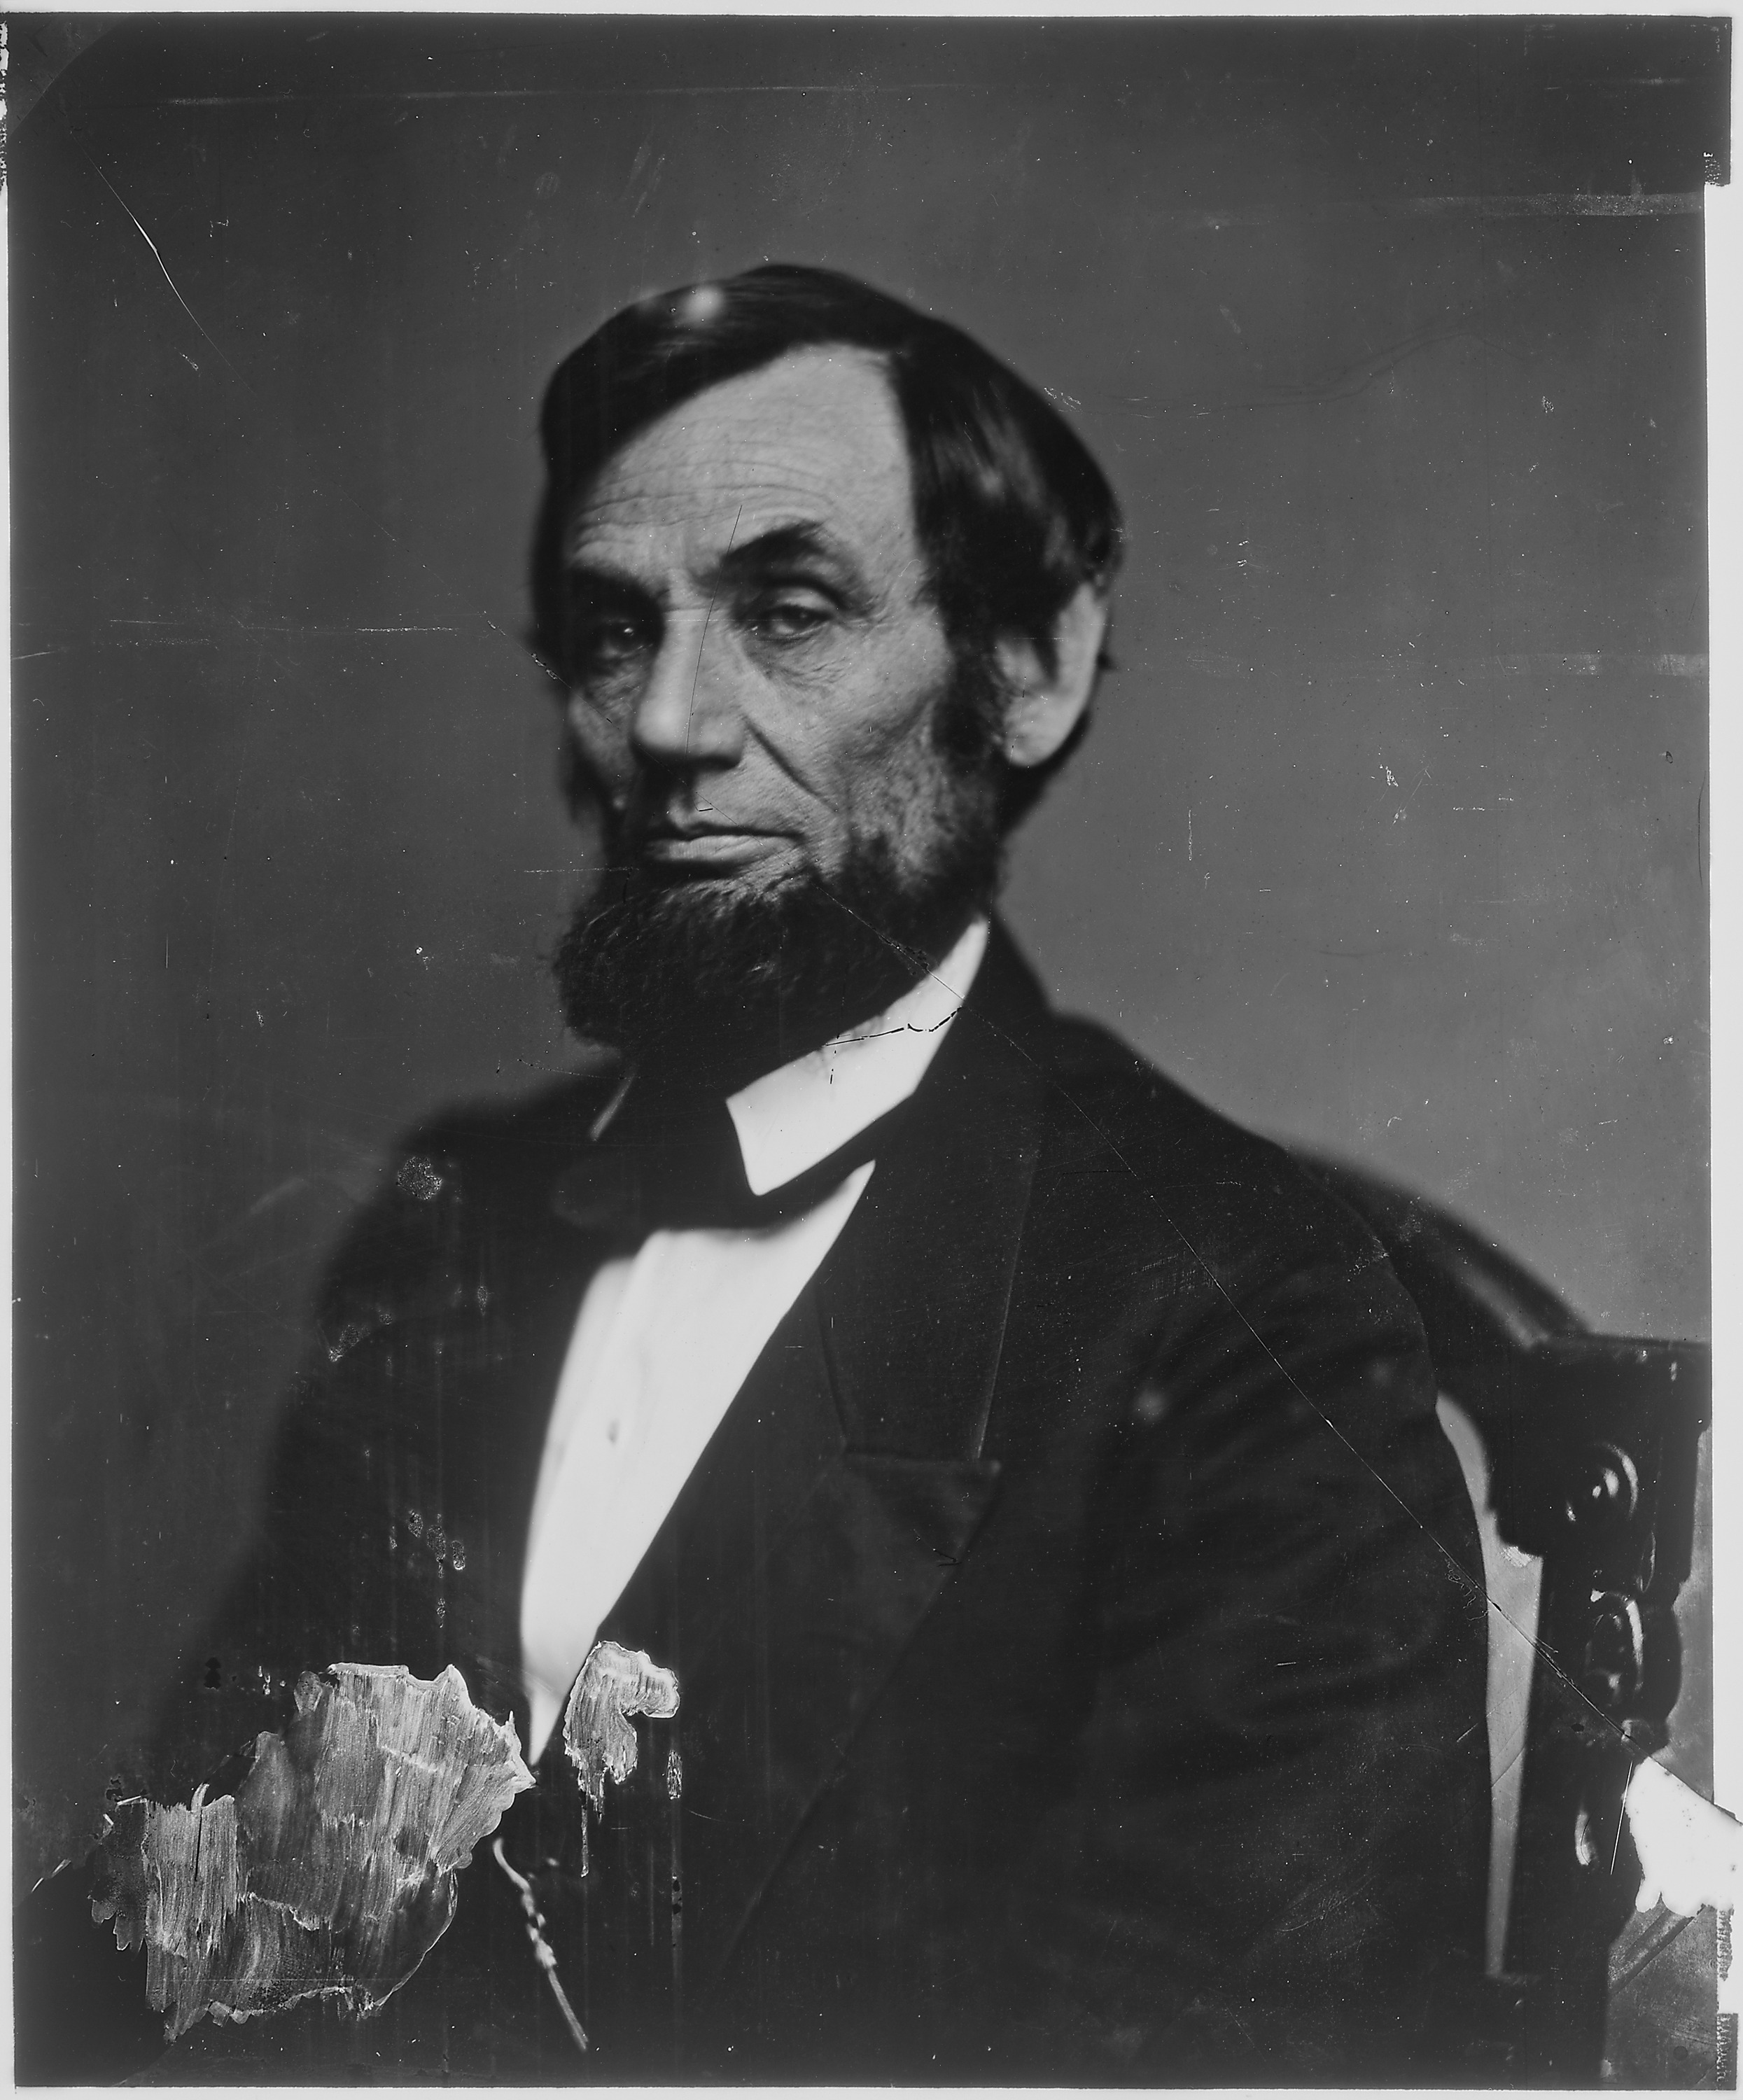 Lincoln on film: Depictions of the 16th American President ...